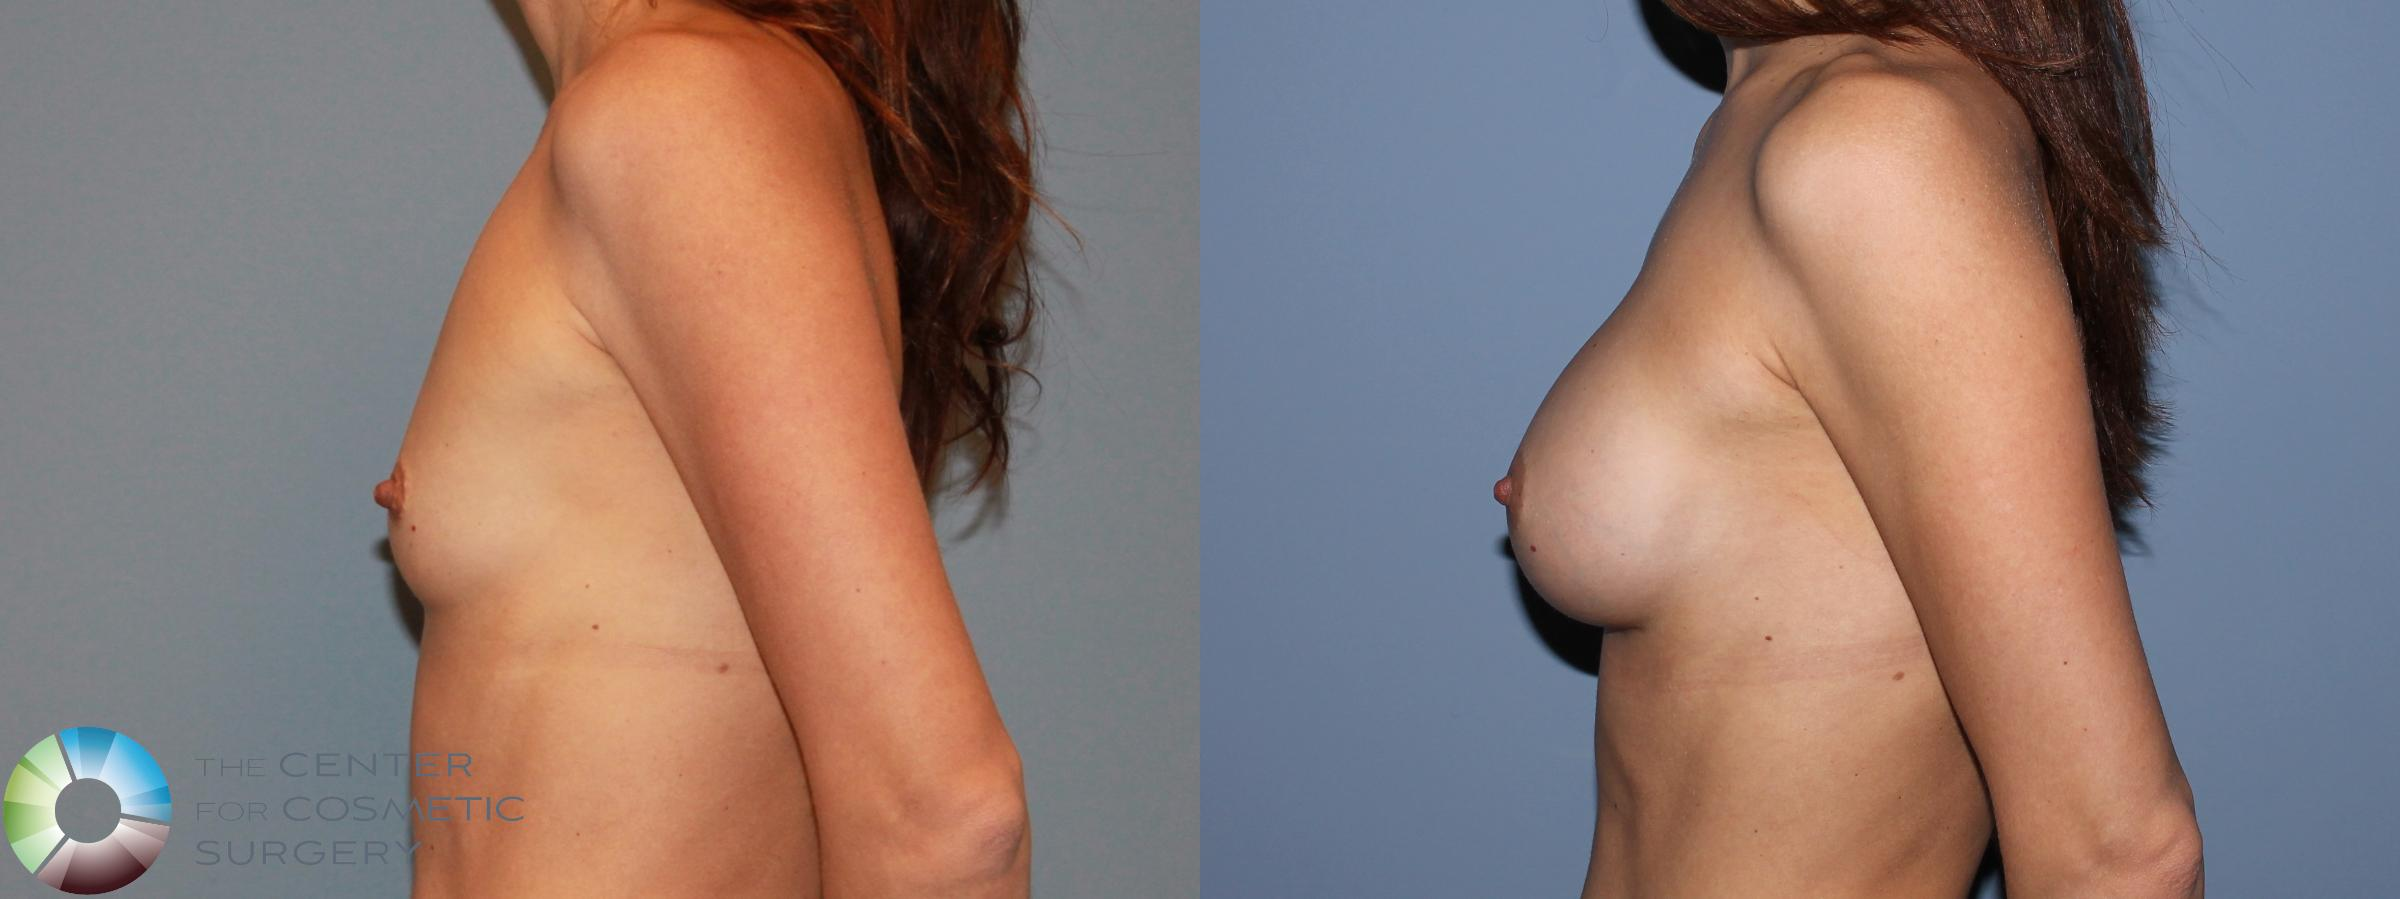 Breast Augmentation Case 481 Before & After View #3 | Golden, CO | The Center for Cosmetic Surgery